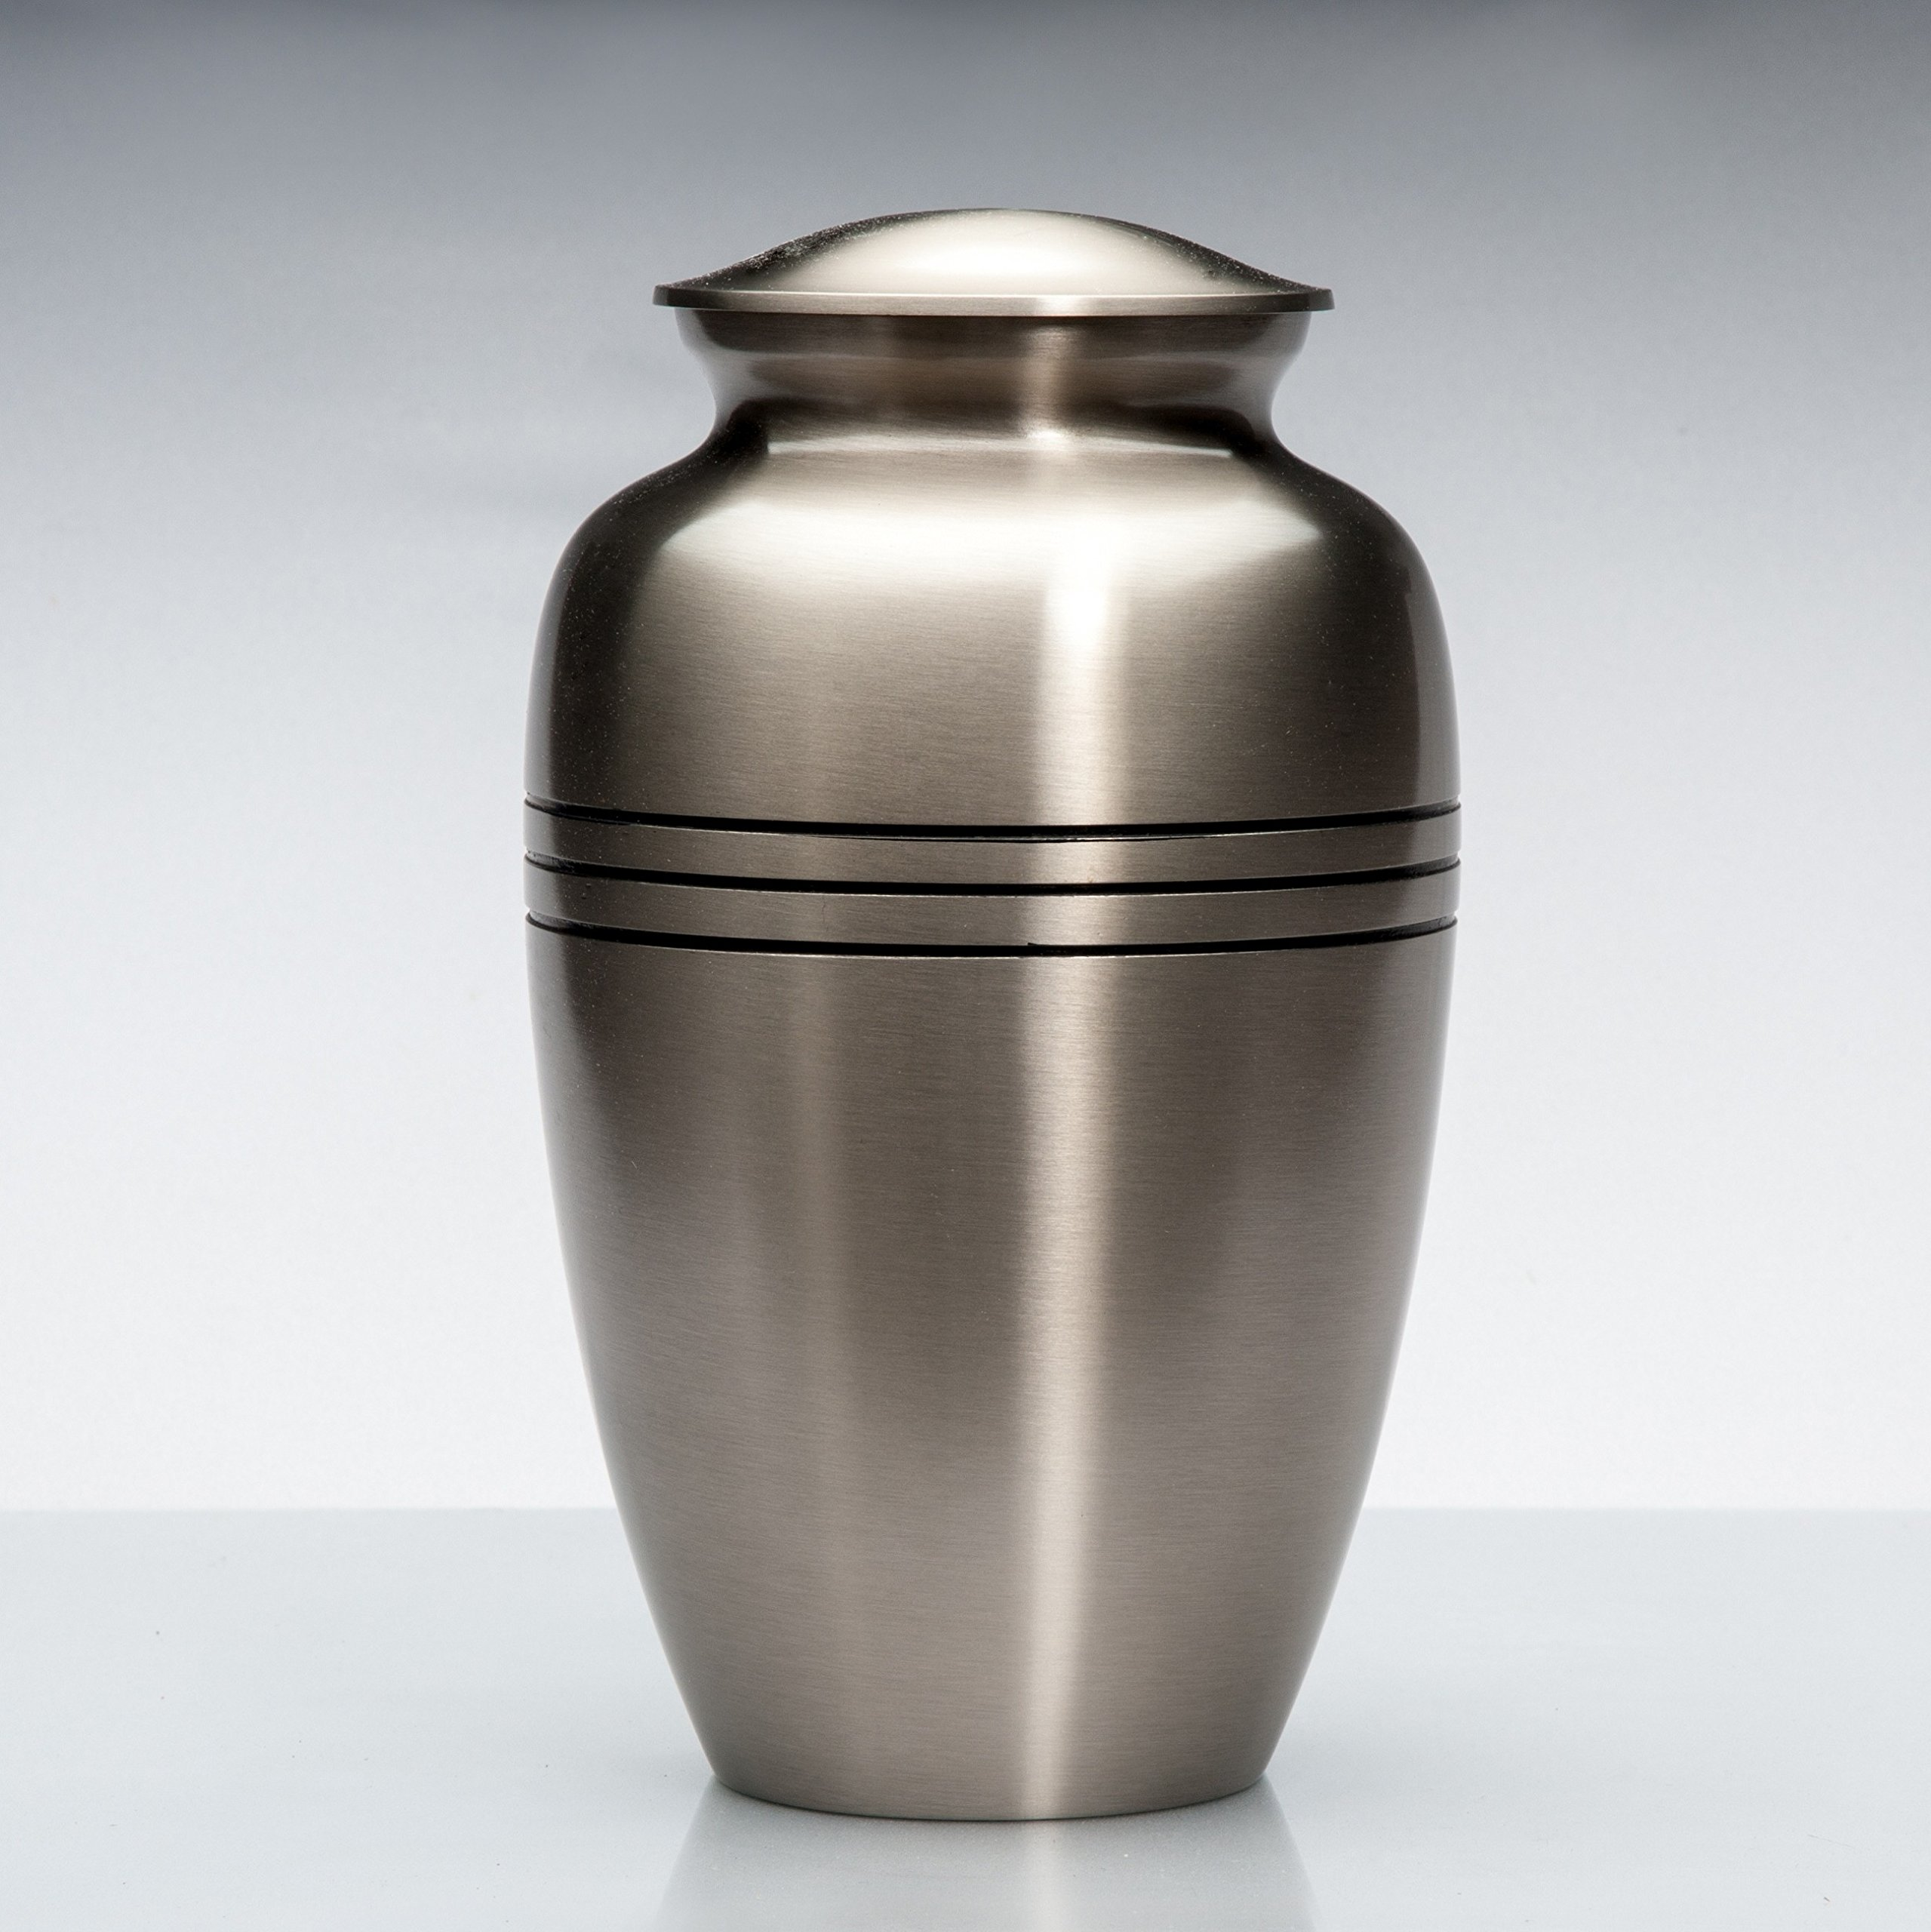 Cremation Funeral Urn for Human Cremated Remains Ashes - The Classic Silver is made of solid brass with a unique and elegant design